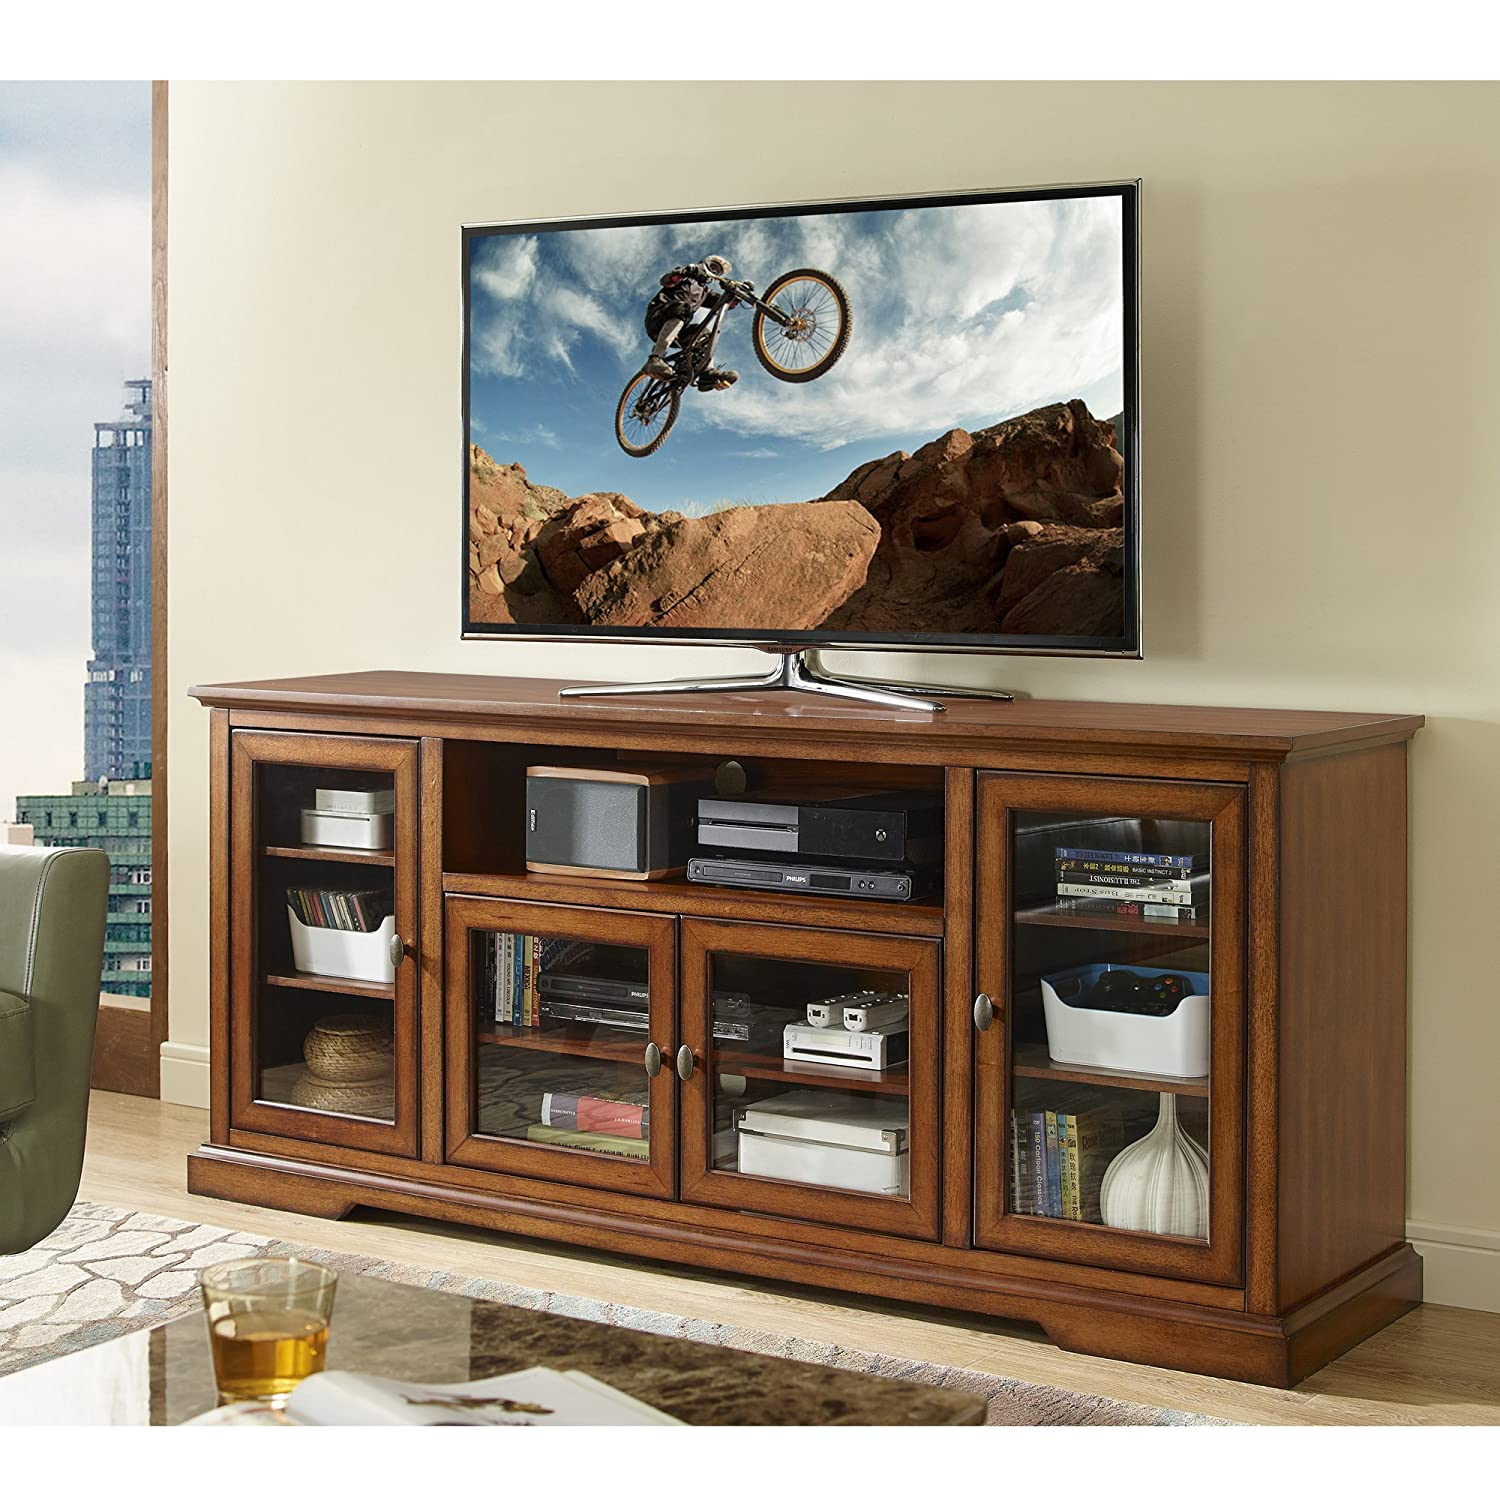 amazoncom new  inch wide highboy style wood tv standrustic brownfinish kitchen  dining. amazoncom new  inch wide highboy style wood tv standrustic